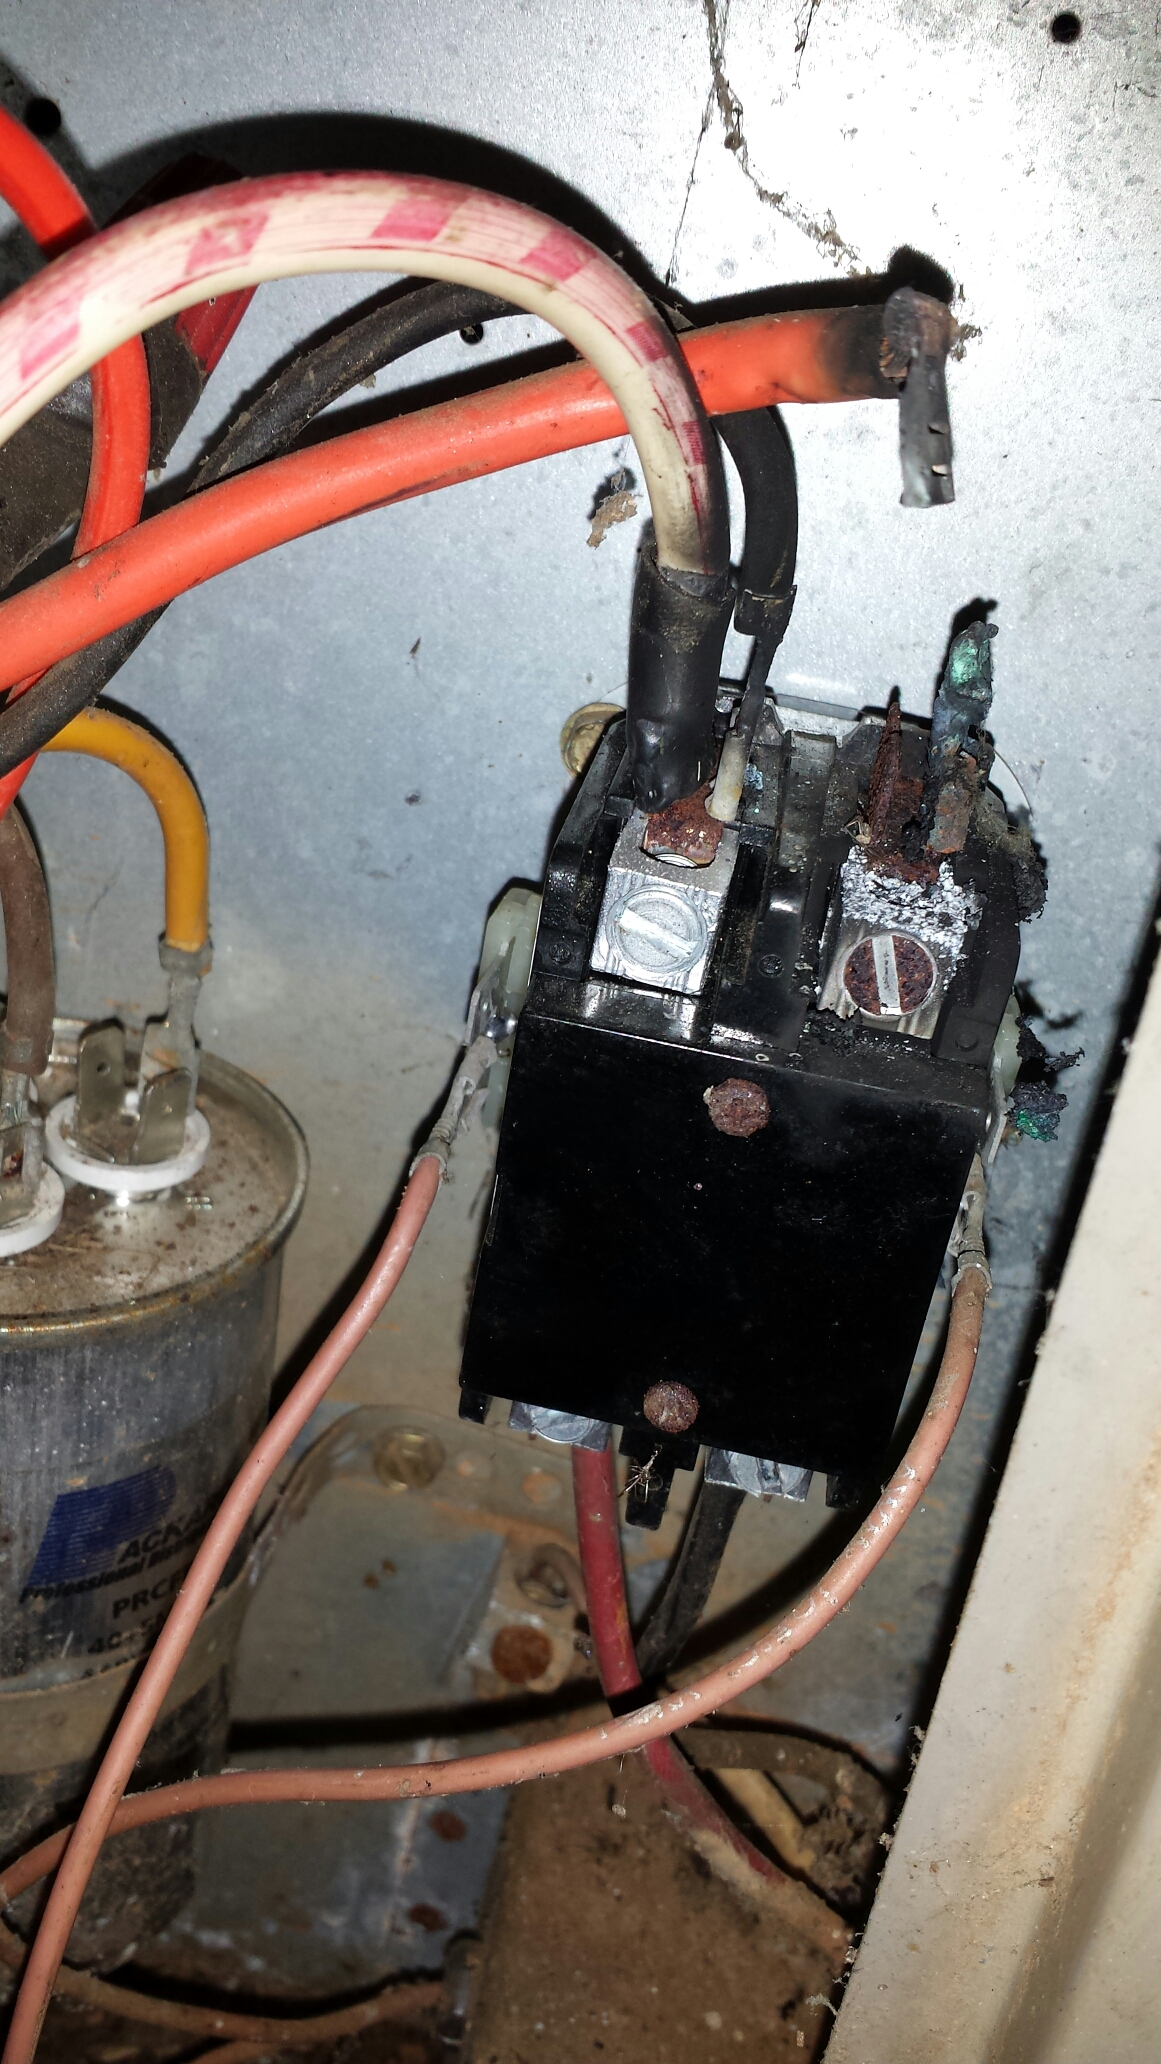 Heating Air Conditioning Repair In Smyrna Ga Ac Contactor Wiring No Cooling Due To Burnt Wires At Replaced